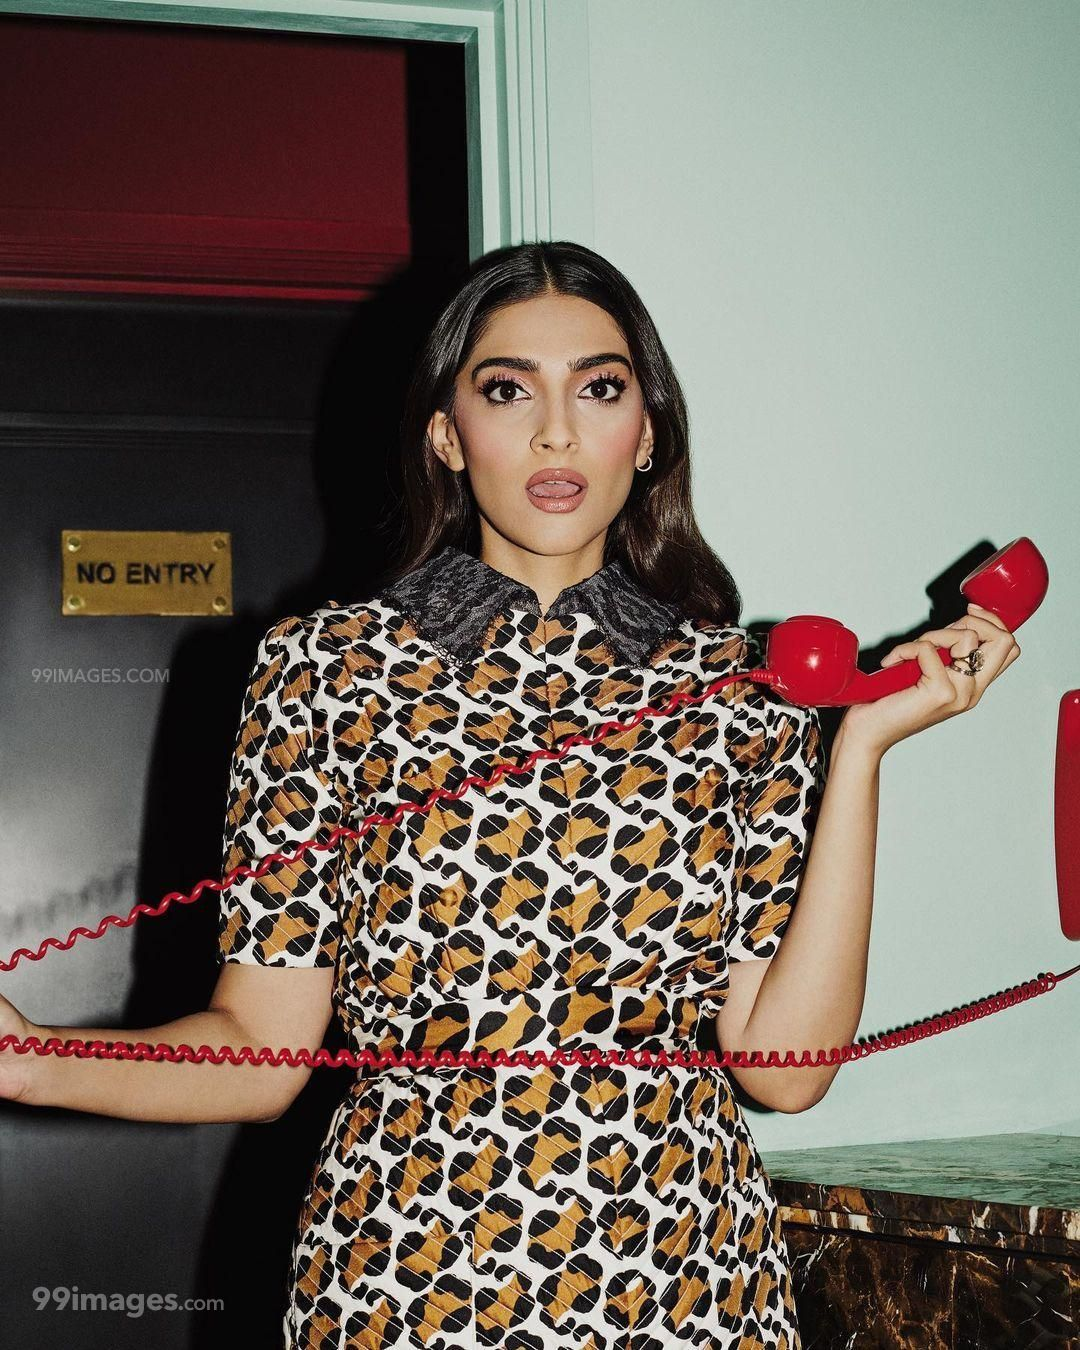 Sonam Kapoor Hot HD Photos & Wallpapers for mobile (1080p) (720106) - Sonam Kapoor